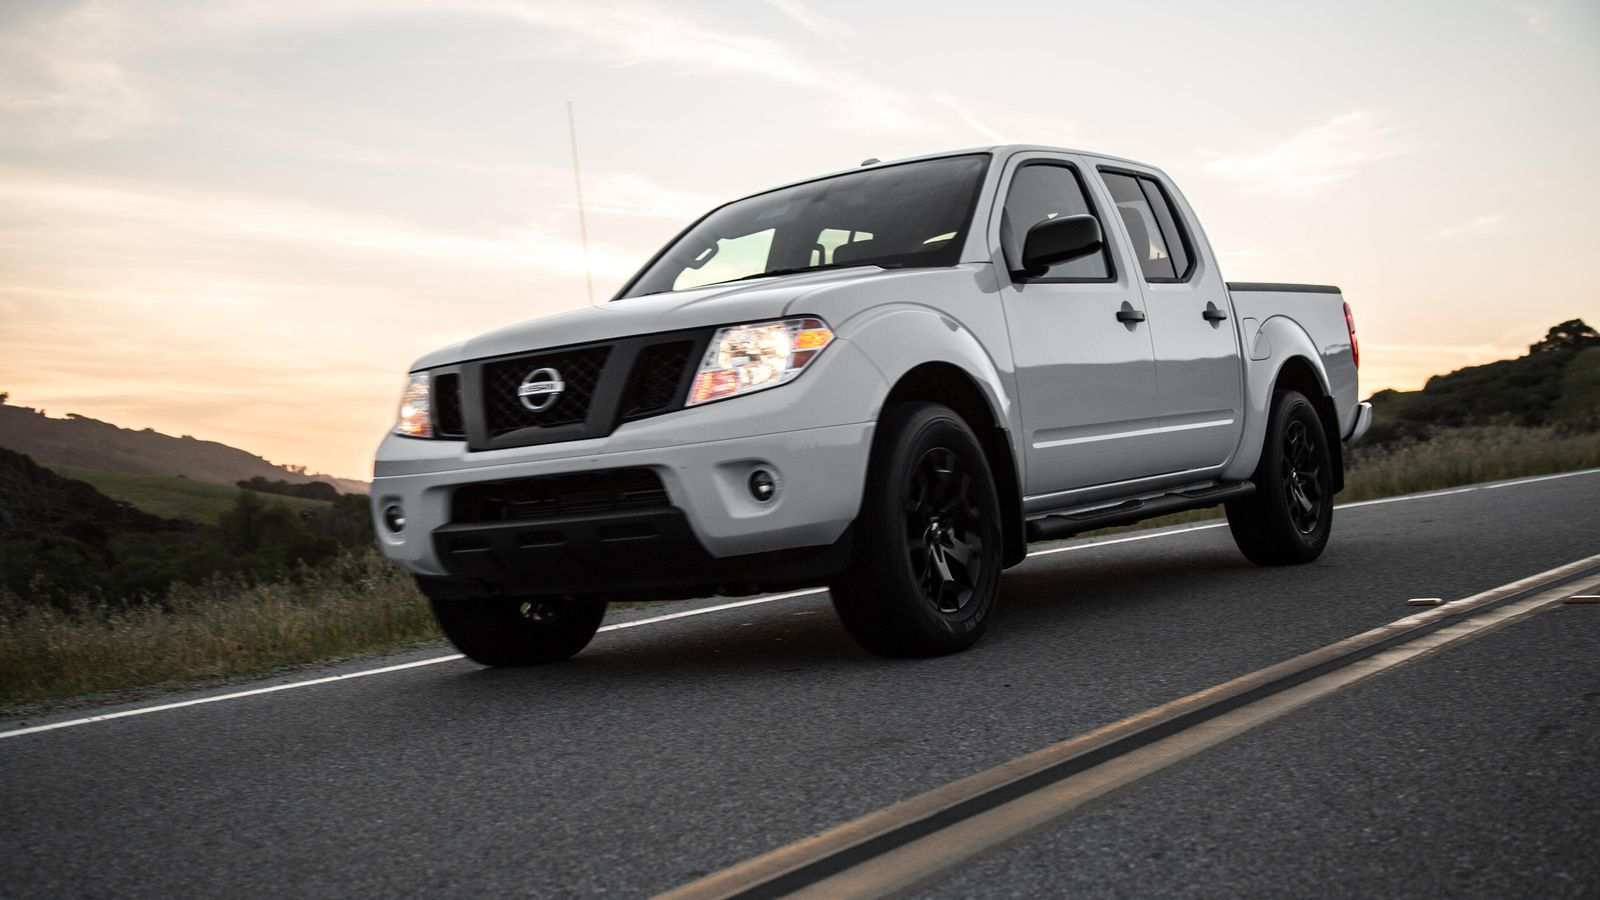 23 Concept of Nissan Frontier 2020 Usa Review by Nissan Frontier 2020 Usa